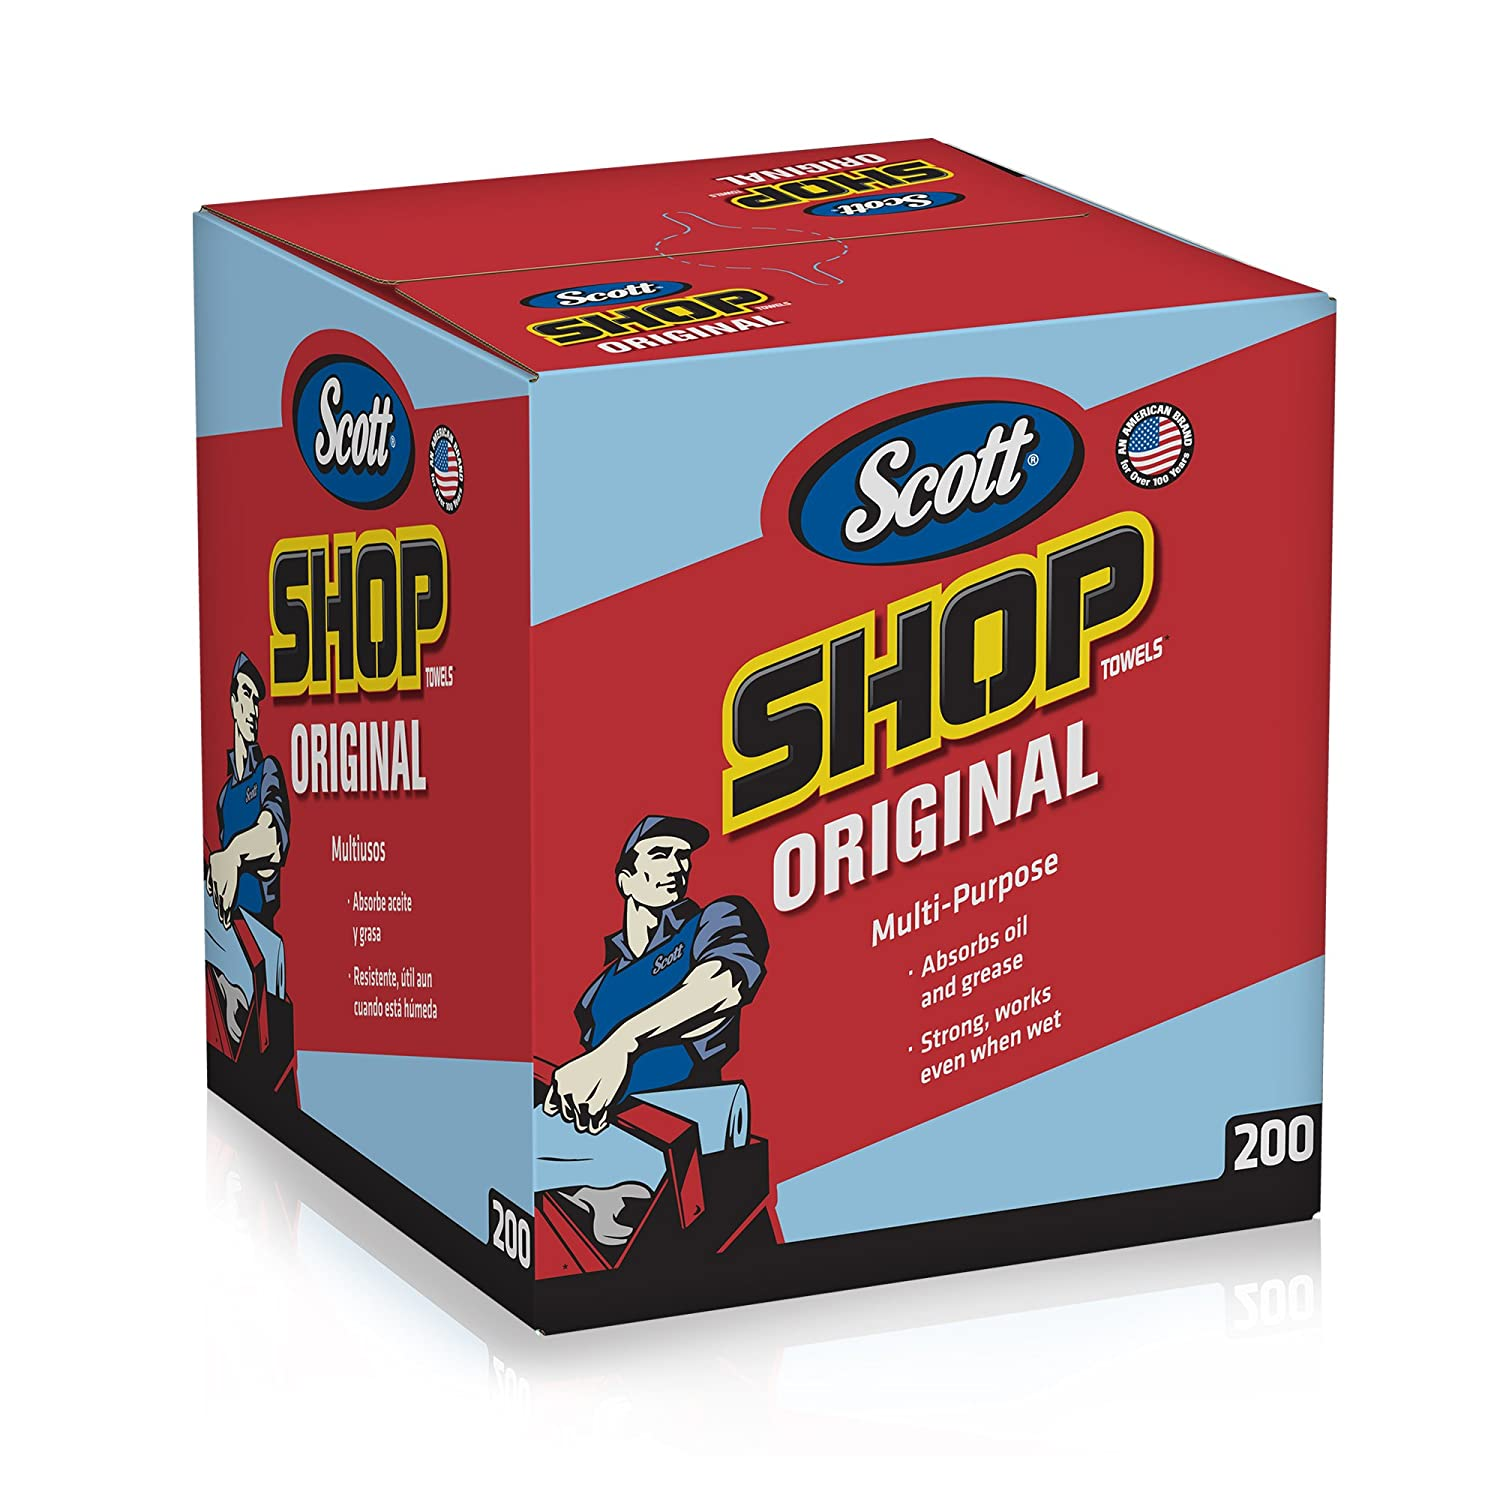 Scott Shop Paper Towels Original (75190), Blue Shop Towels, Pop-Up Dispenser Box, 200 Bulk Paper Towels / Box, 8 Boxes / Case